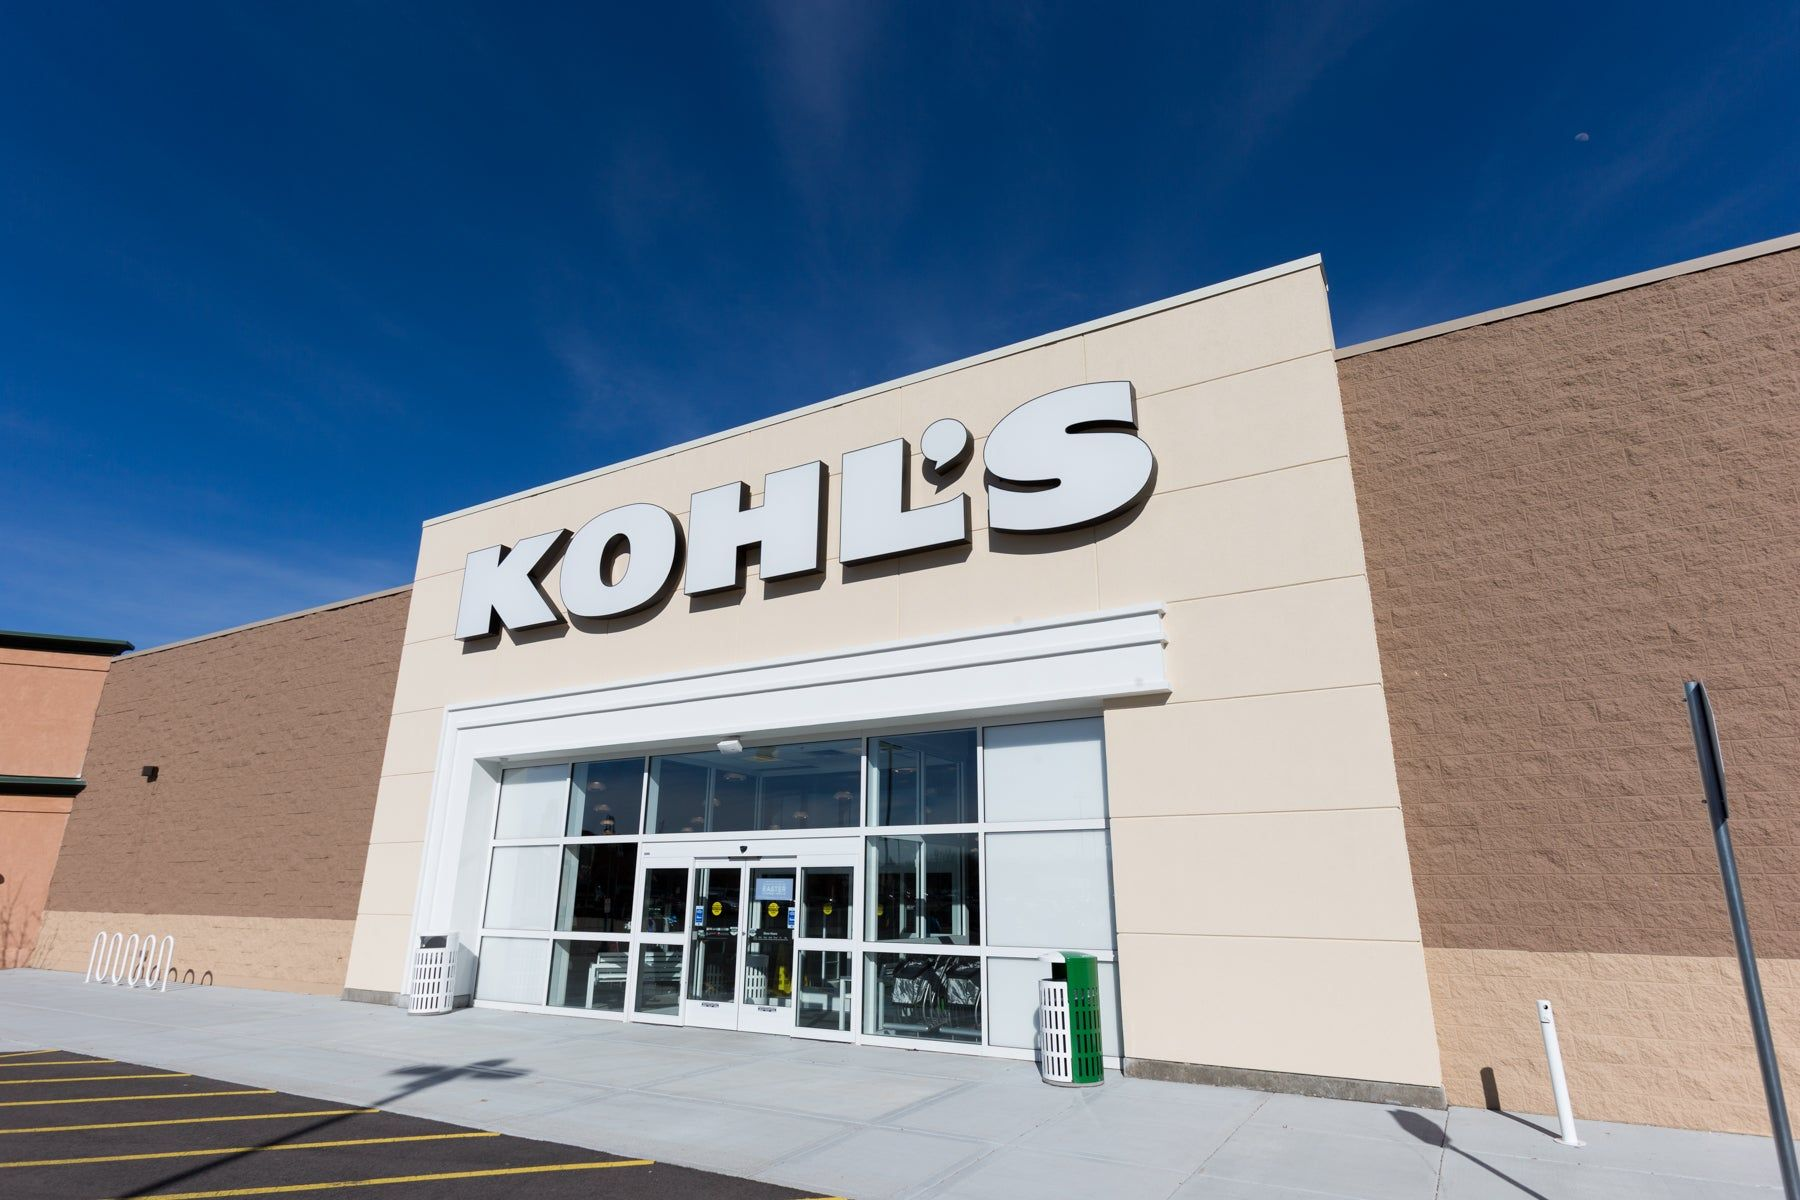 Kohls Christmas Hours 2020 Kohl's Amazon Partnership Is Looking Like a Bust | The Motley Fool